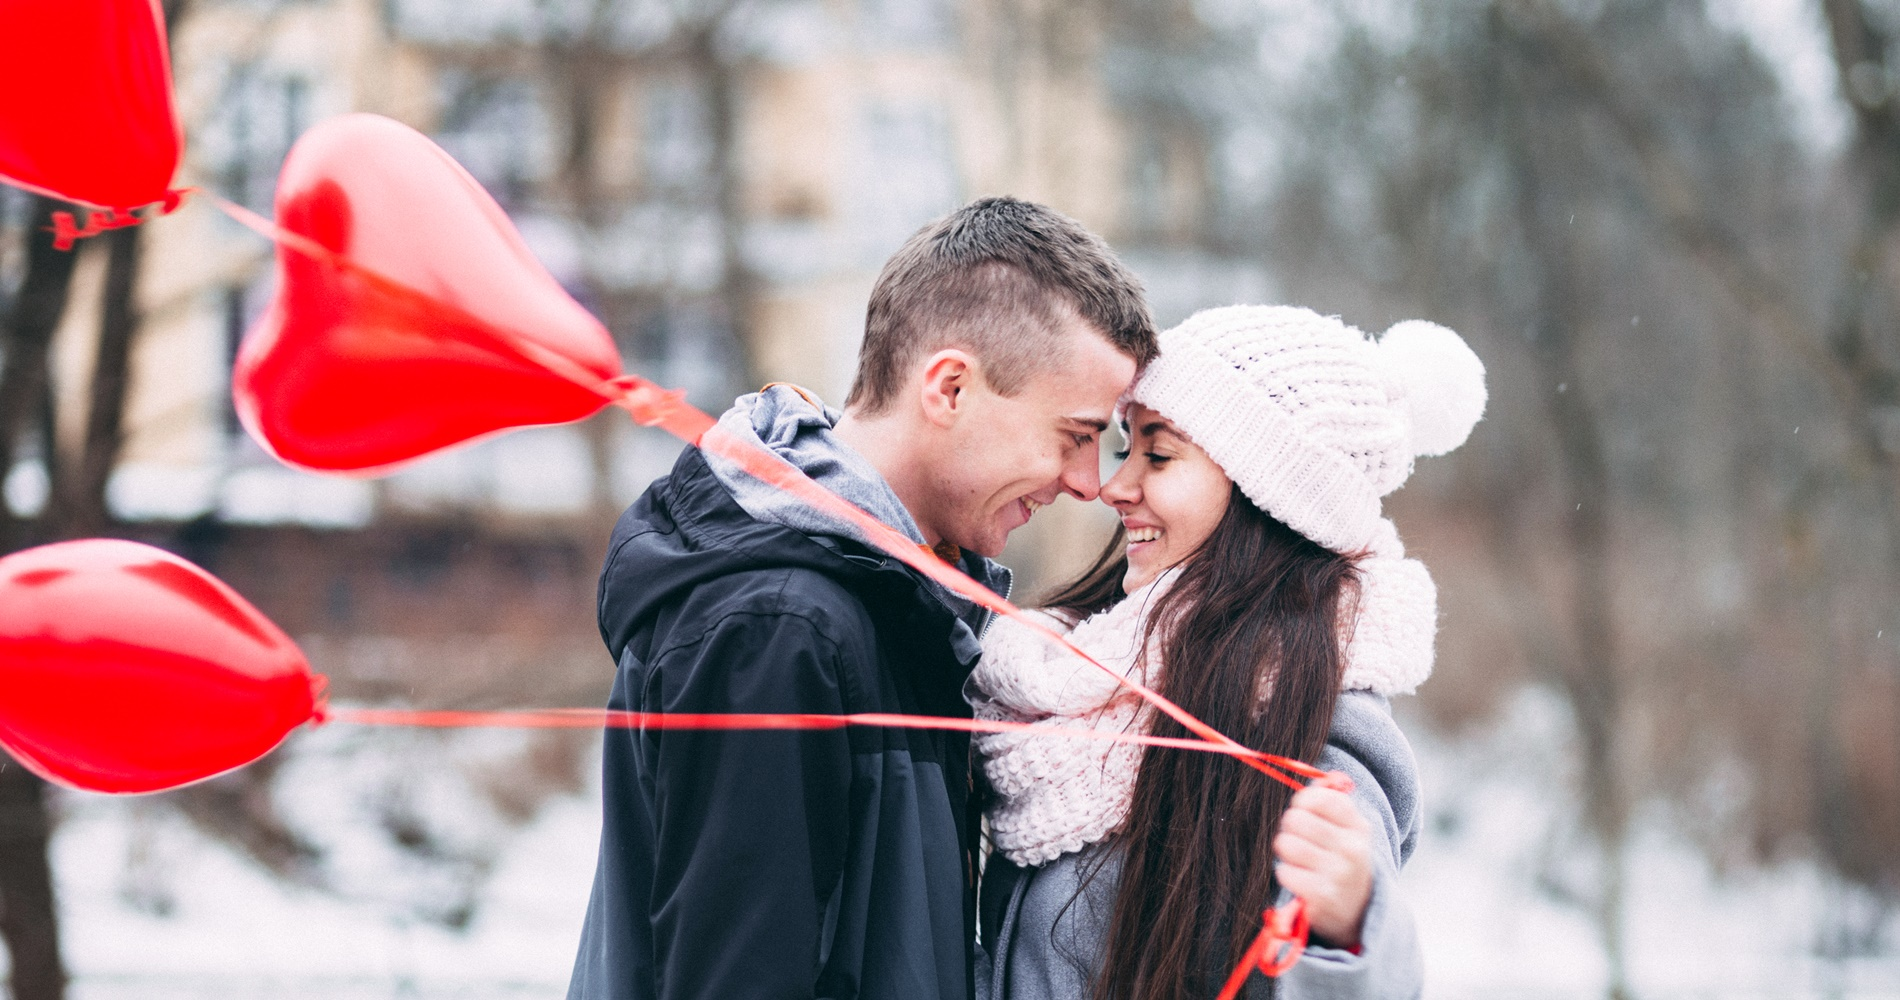 Couple standing together with red balloons., science & tech, relationships